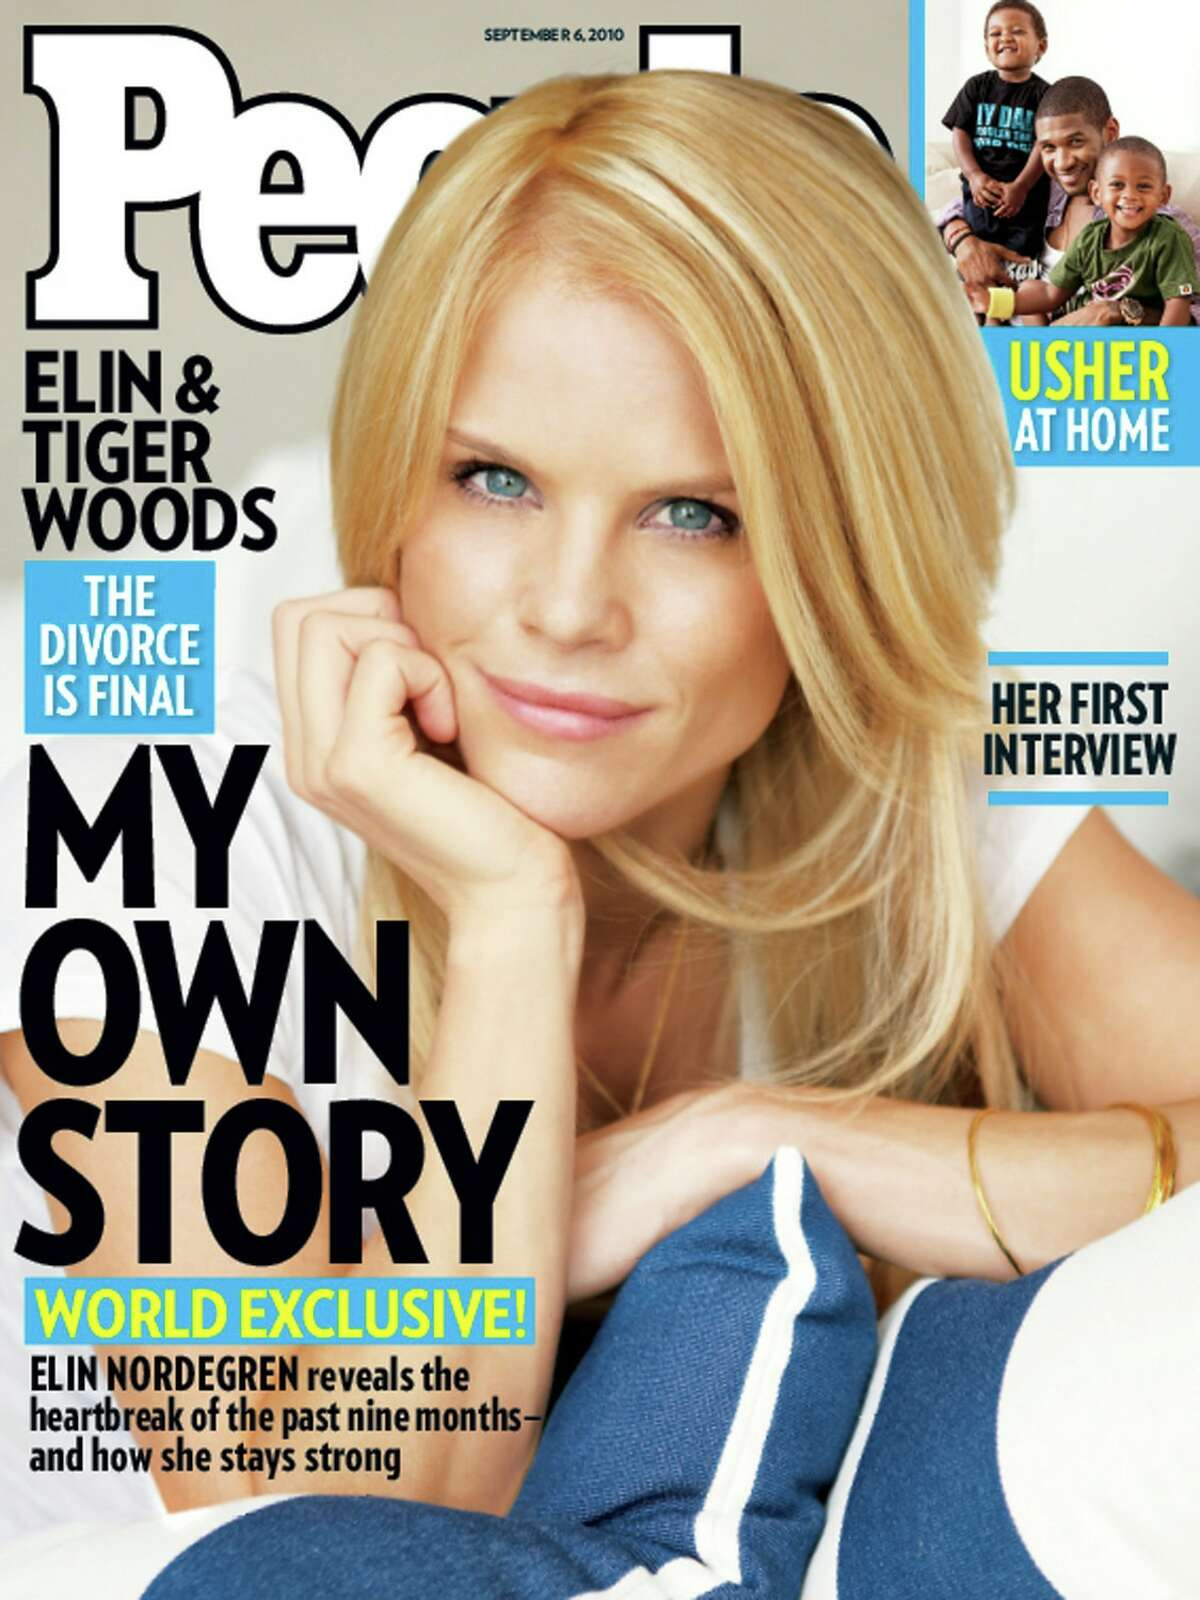 This image courtesy of People Magazine shows Elin Nordegren on the September 6, 2010 cover of People magazine.Tiger Woods's ex-wife Elin Nordegren has broken her silence about the couple's failed marriage, in an interview with People magazine published August 25, 2010, expressing